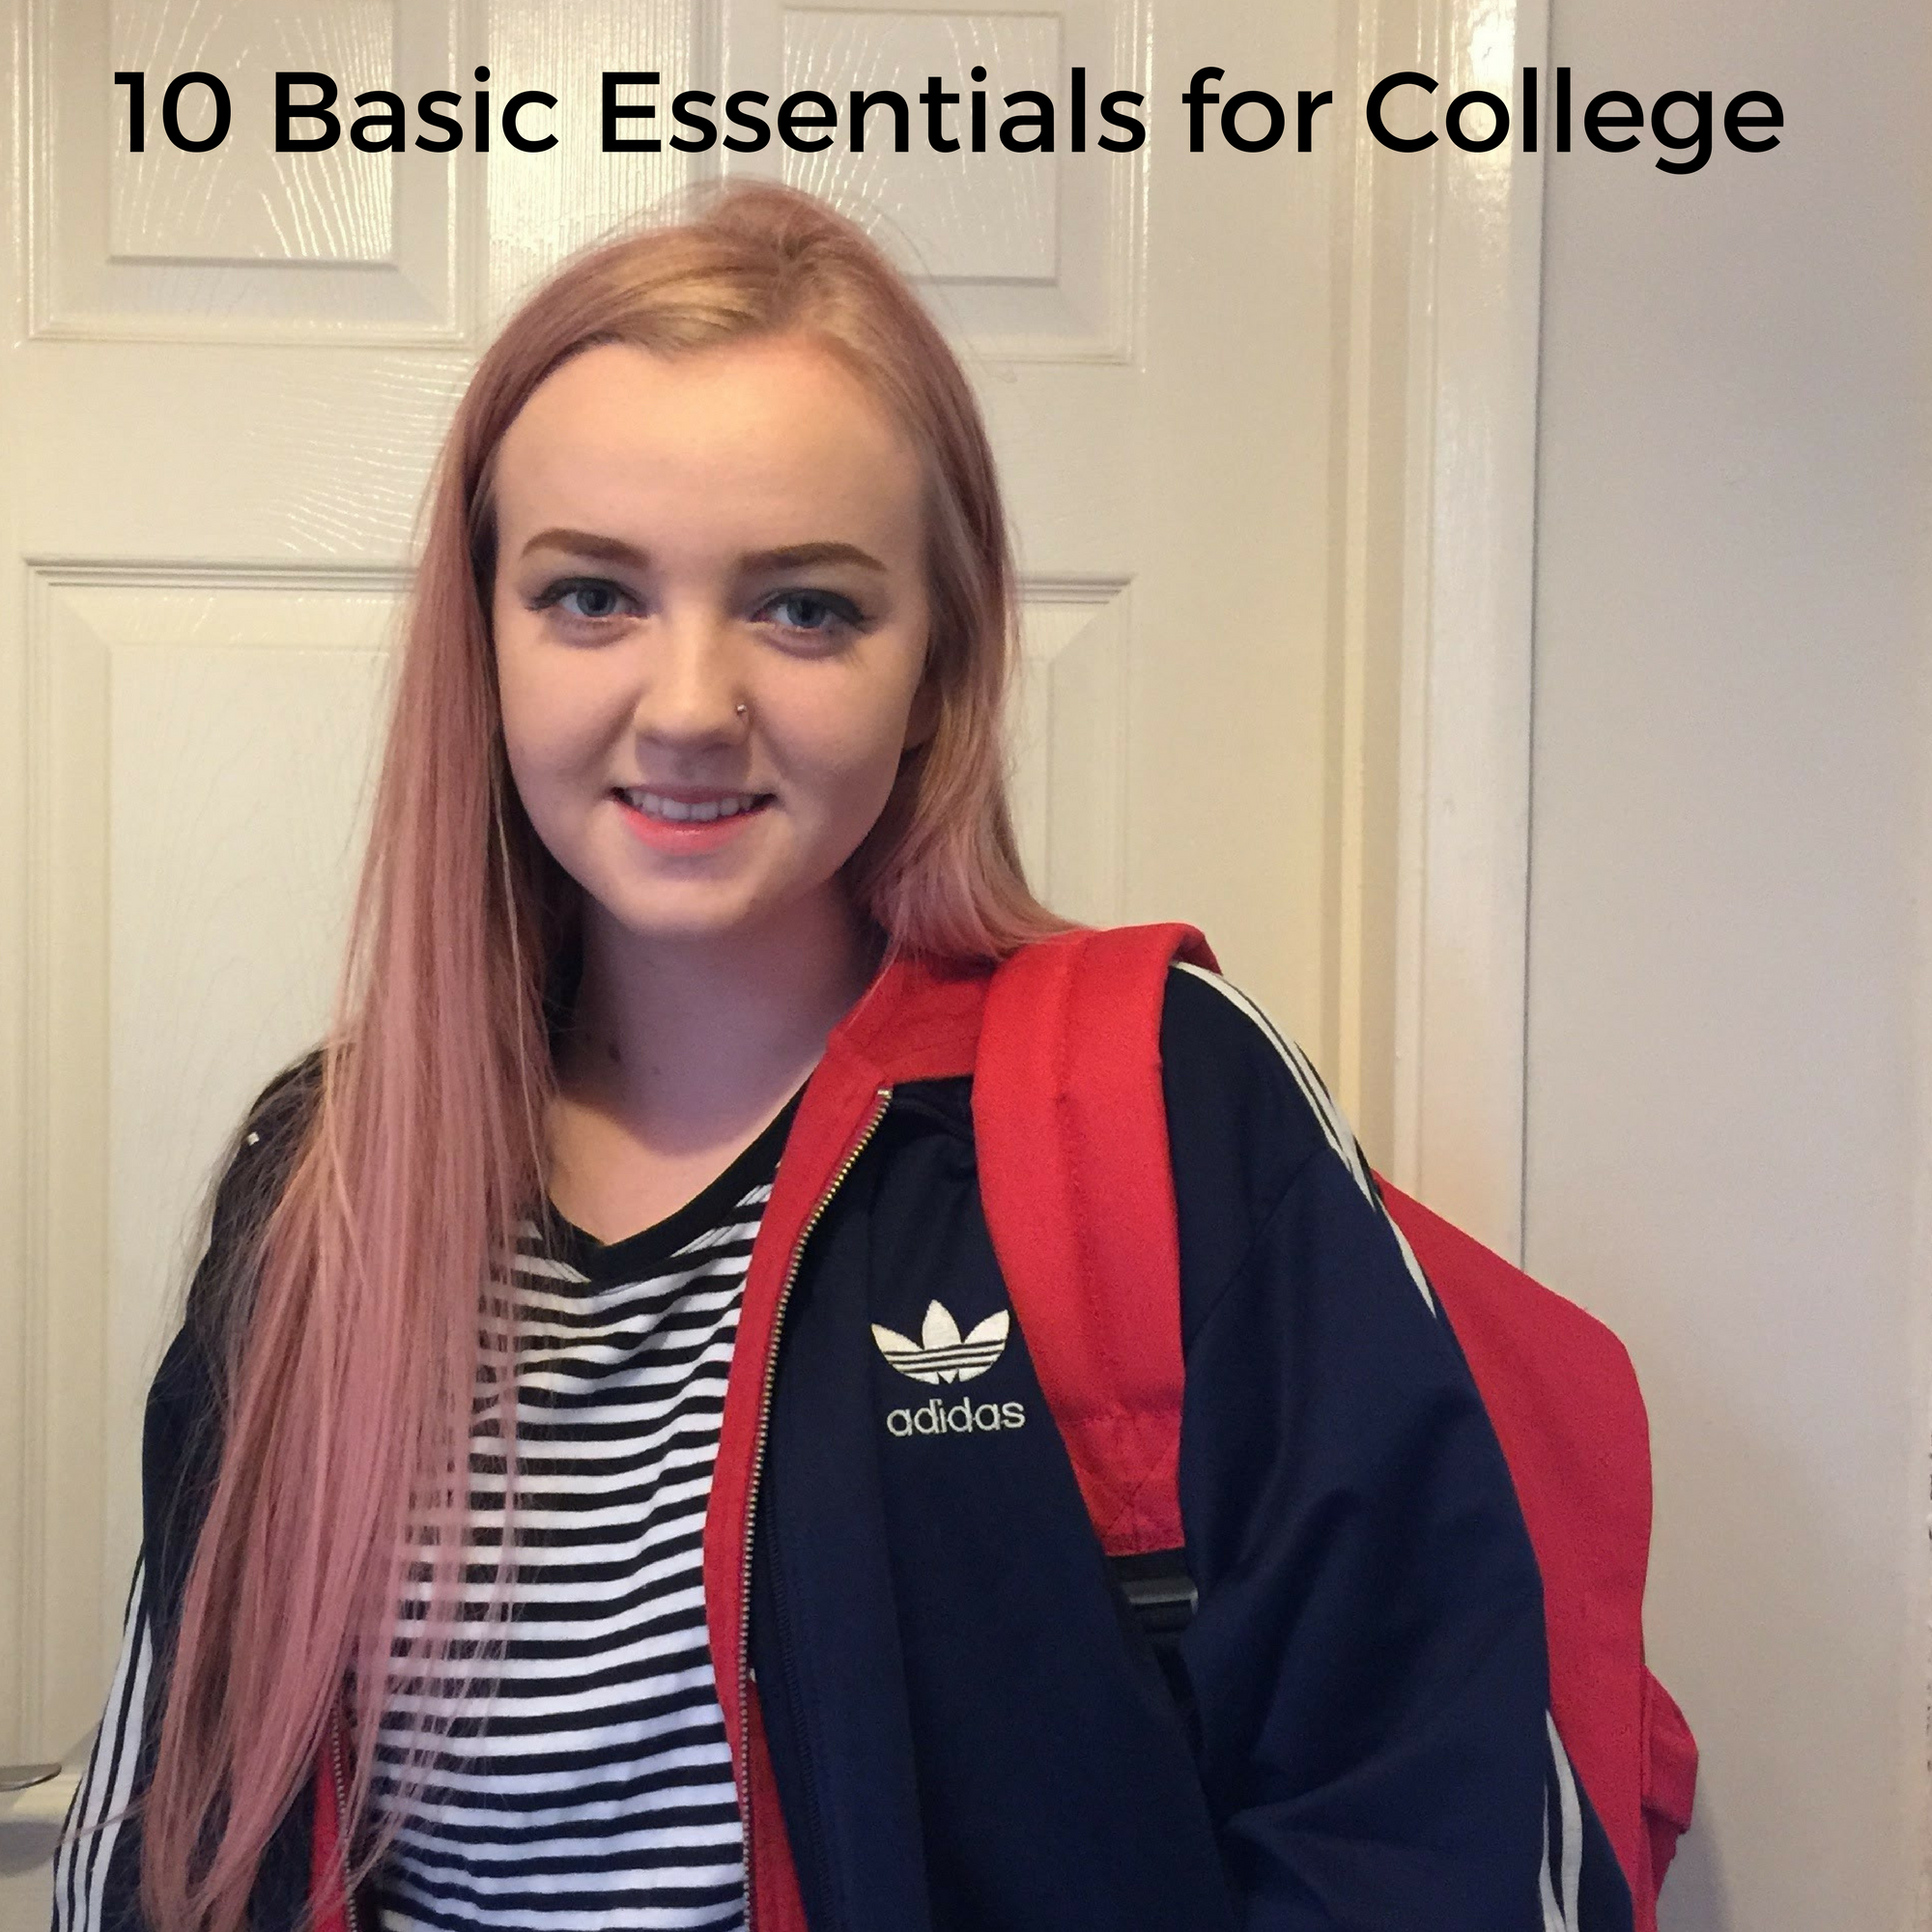 10 Basic Essentials for College